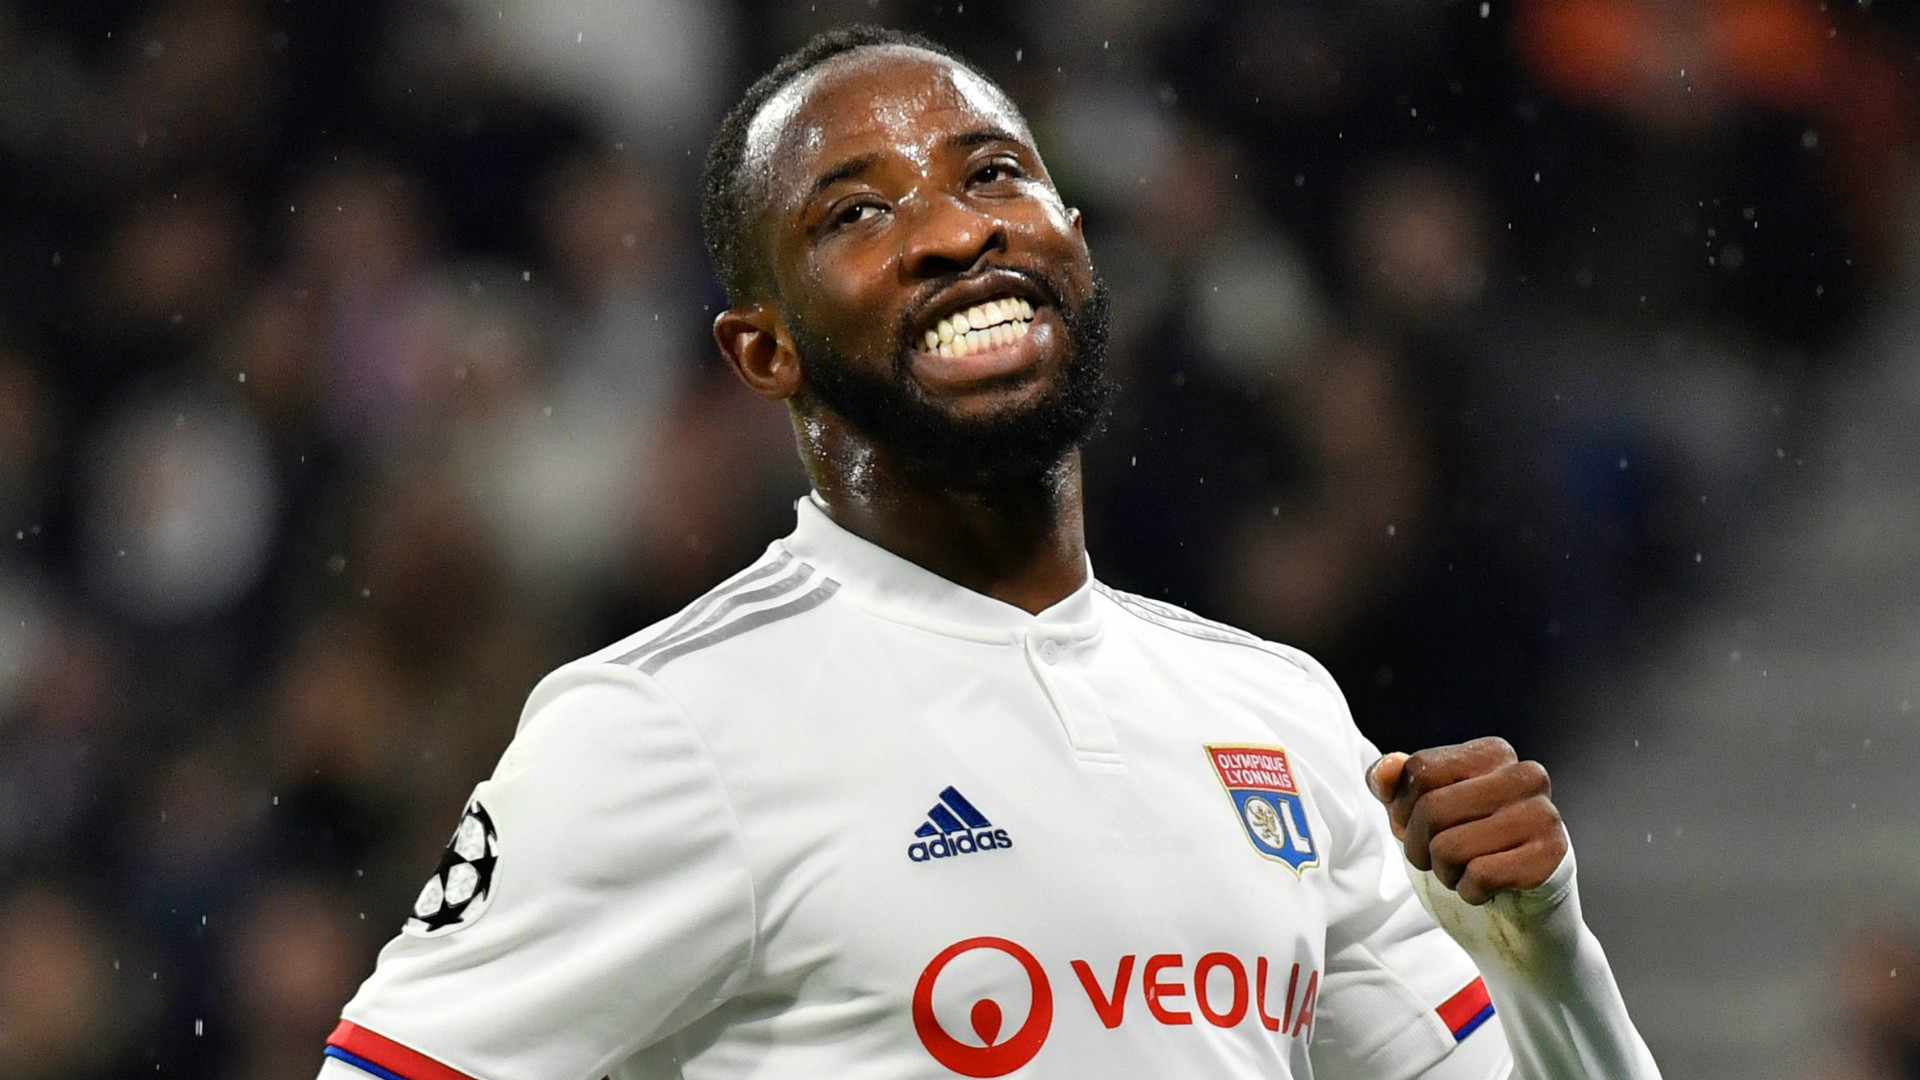 Chelsea-linked Dembele will not leave Lyon in January, Aulas affirms